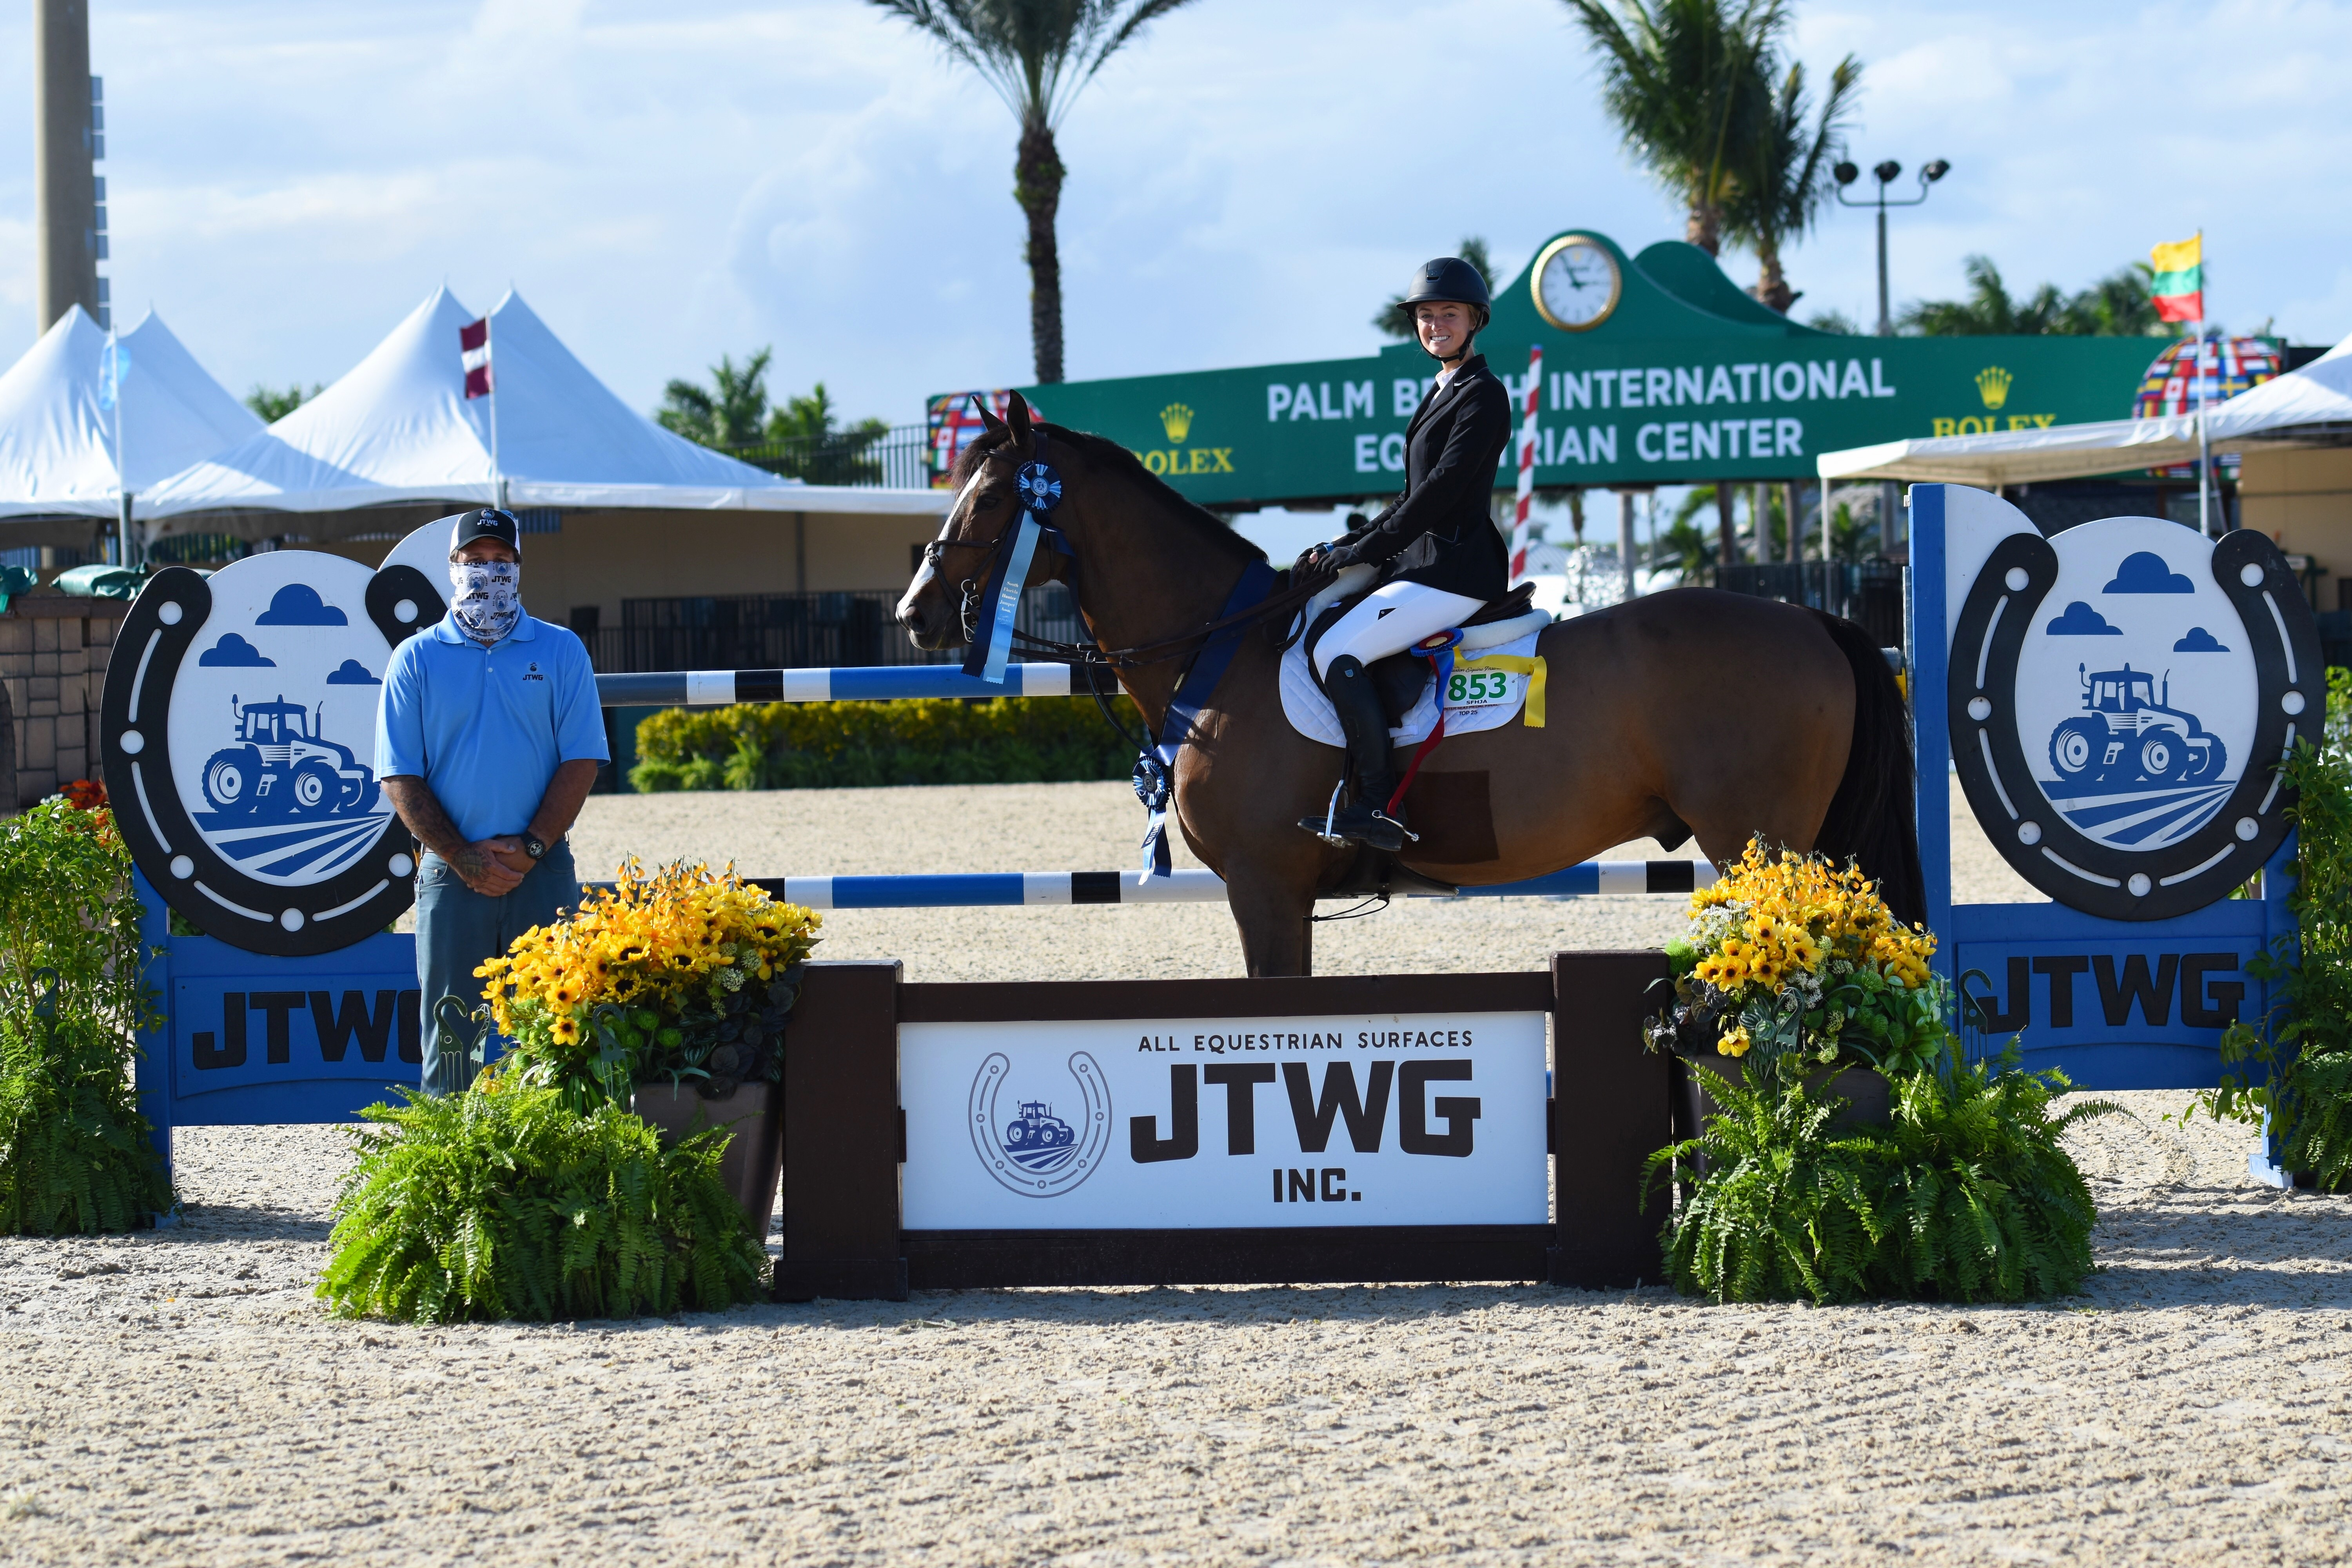 Catherine Wachtell, pictured on Coverboy with Travis Gould of JTWG, Inc., won the $10,000 High Junior/Amateur-Owner Jumper Classic, sponsored by JTWG, Inc, on Indy Van De Roten. ©PBIEC